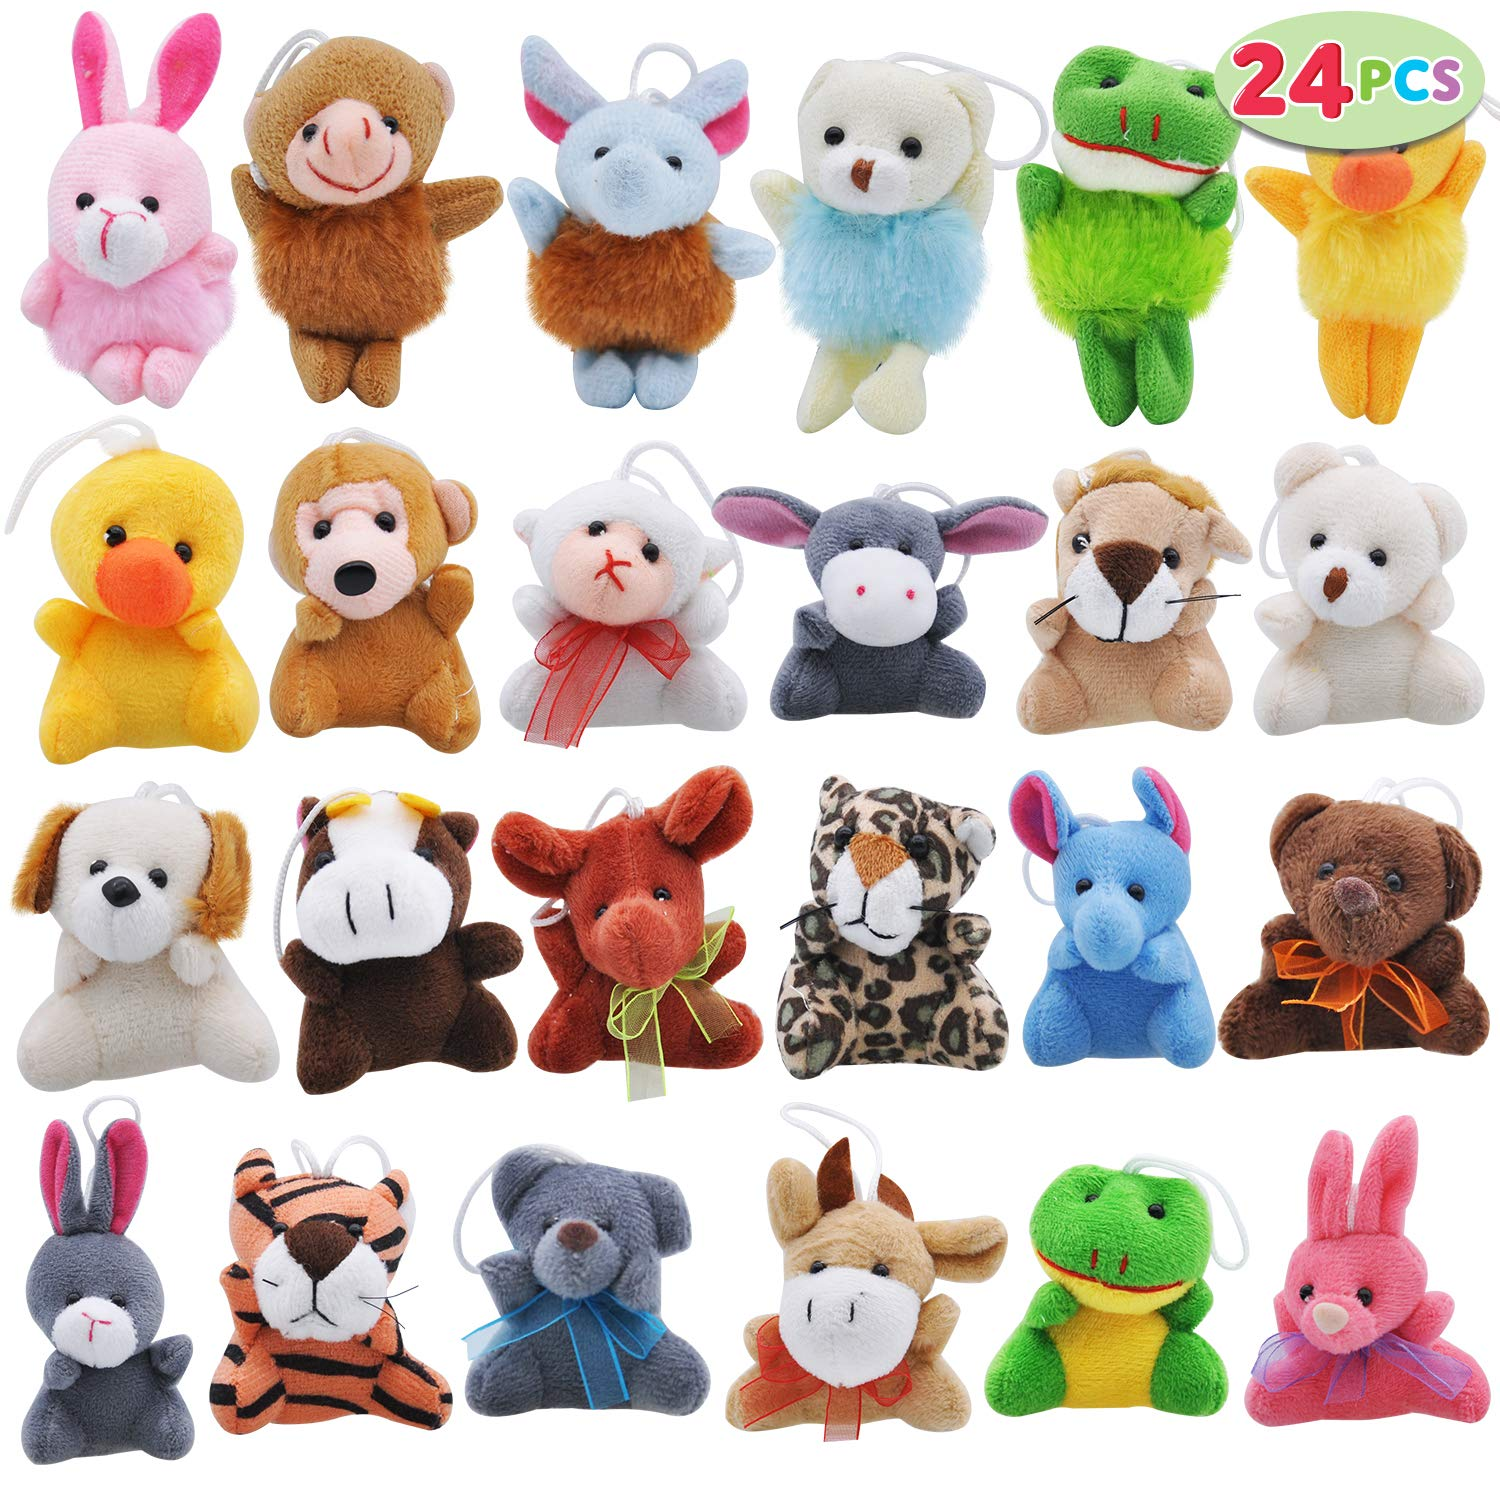 "Joyin Toy 24 Pack Mini Animal Plush Toy Assortment (24 units 3"" each) Kids Valentine Gift Easter Egg Filter Party Favors"